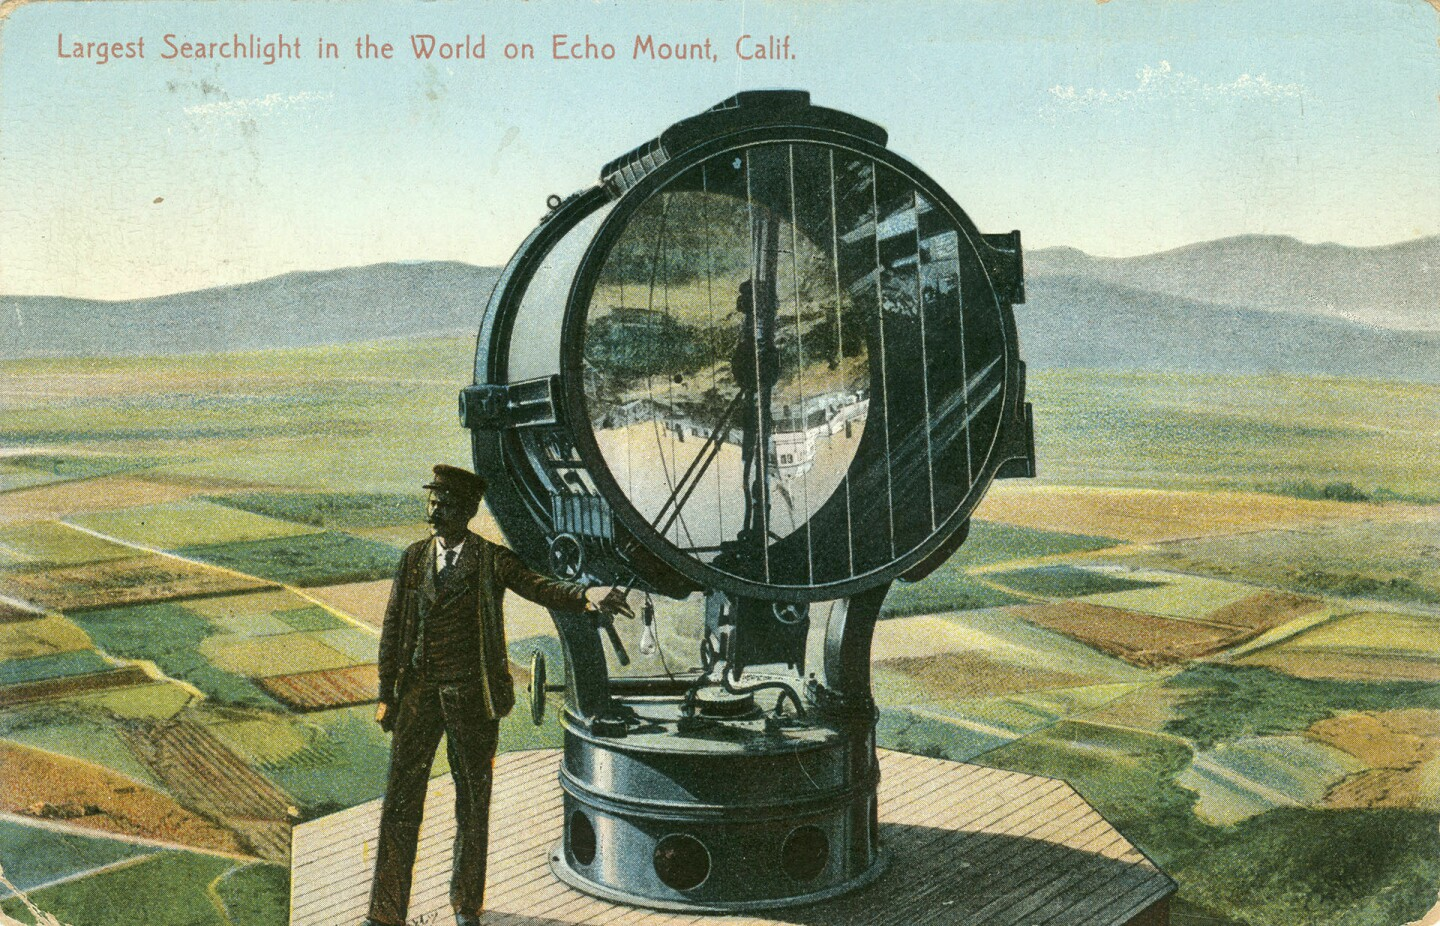 The Largest Searchlight in the World on Echo Mount, Calif.